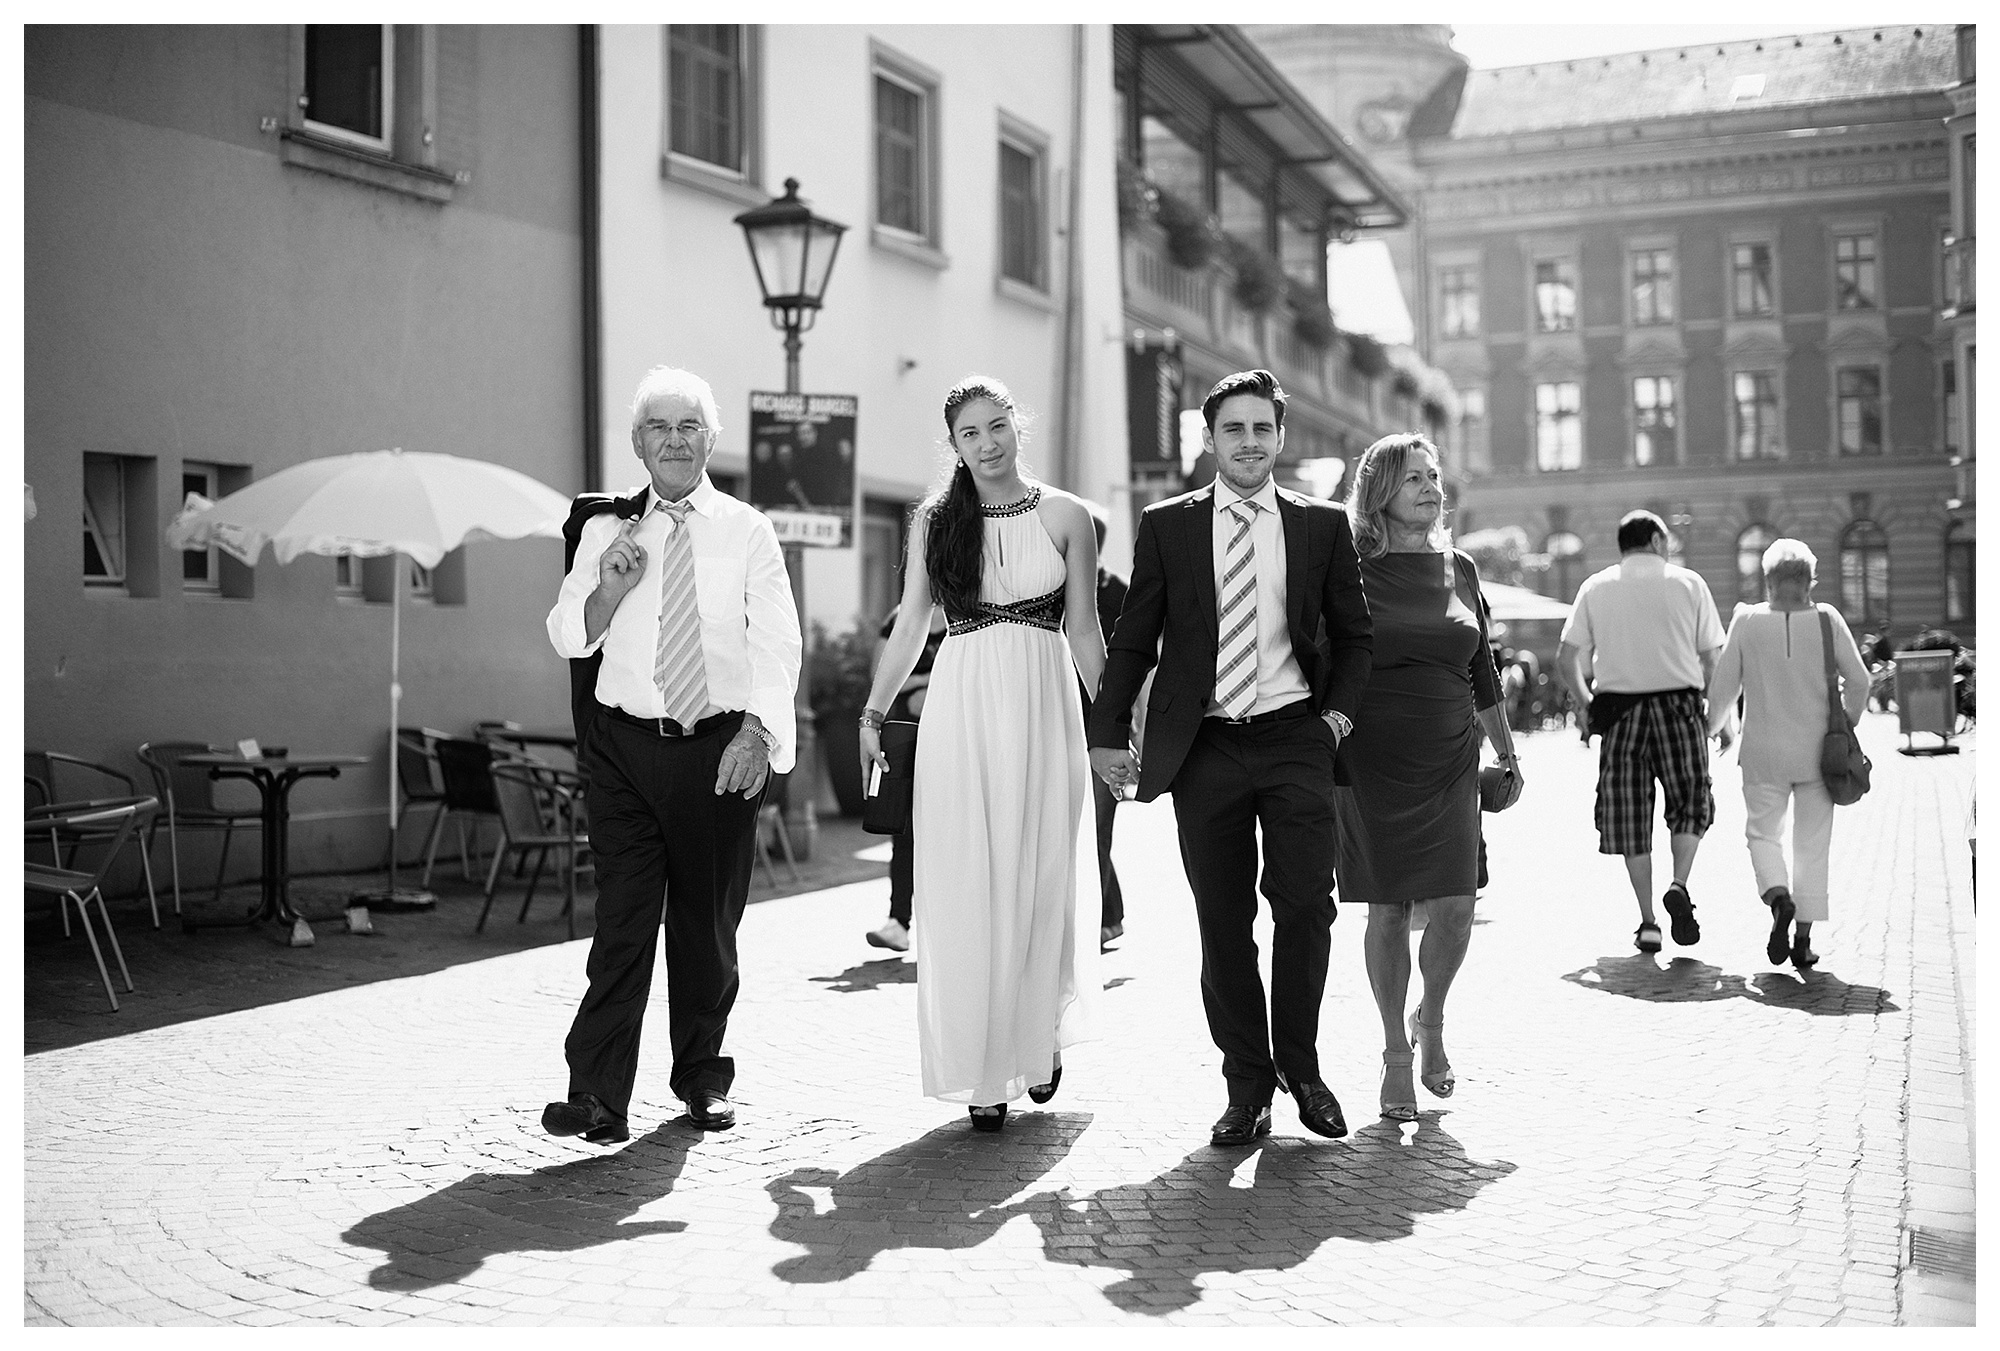 Fotograf Konstanz - Hochzeitsreportage Konstanz Raphael Nicole Elmar Feuerbacher Photography Hochzeit Portrait 31 - Wedding in Constance at Lake of Constance  - 51 -